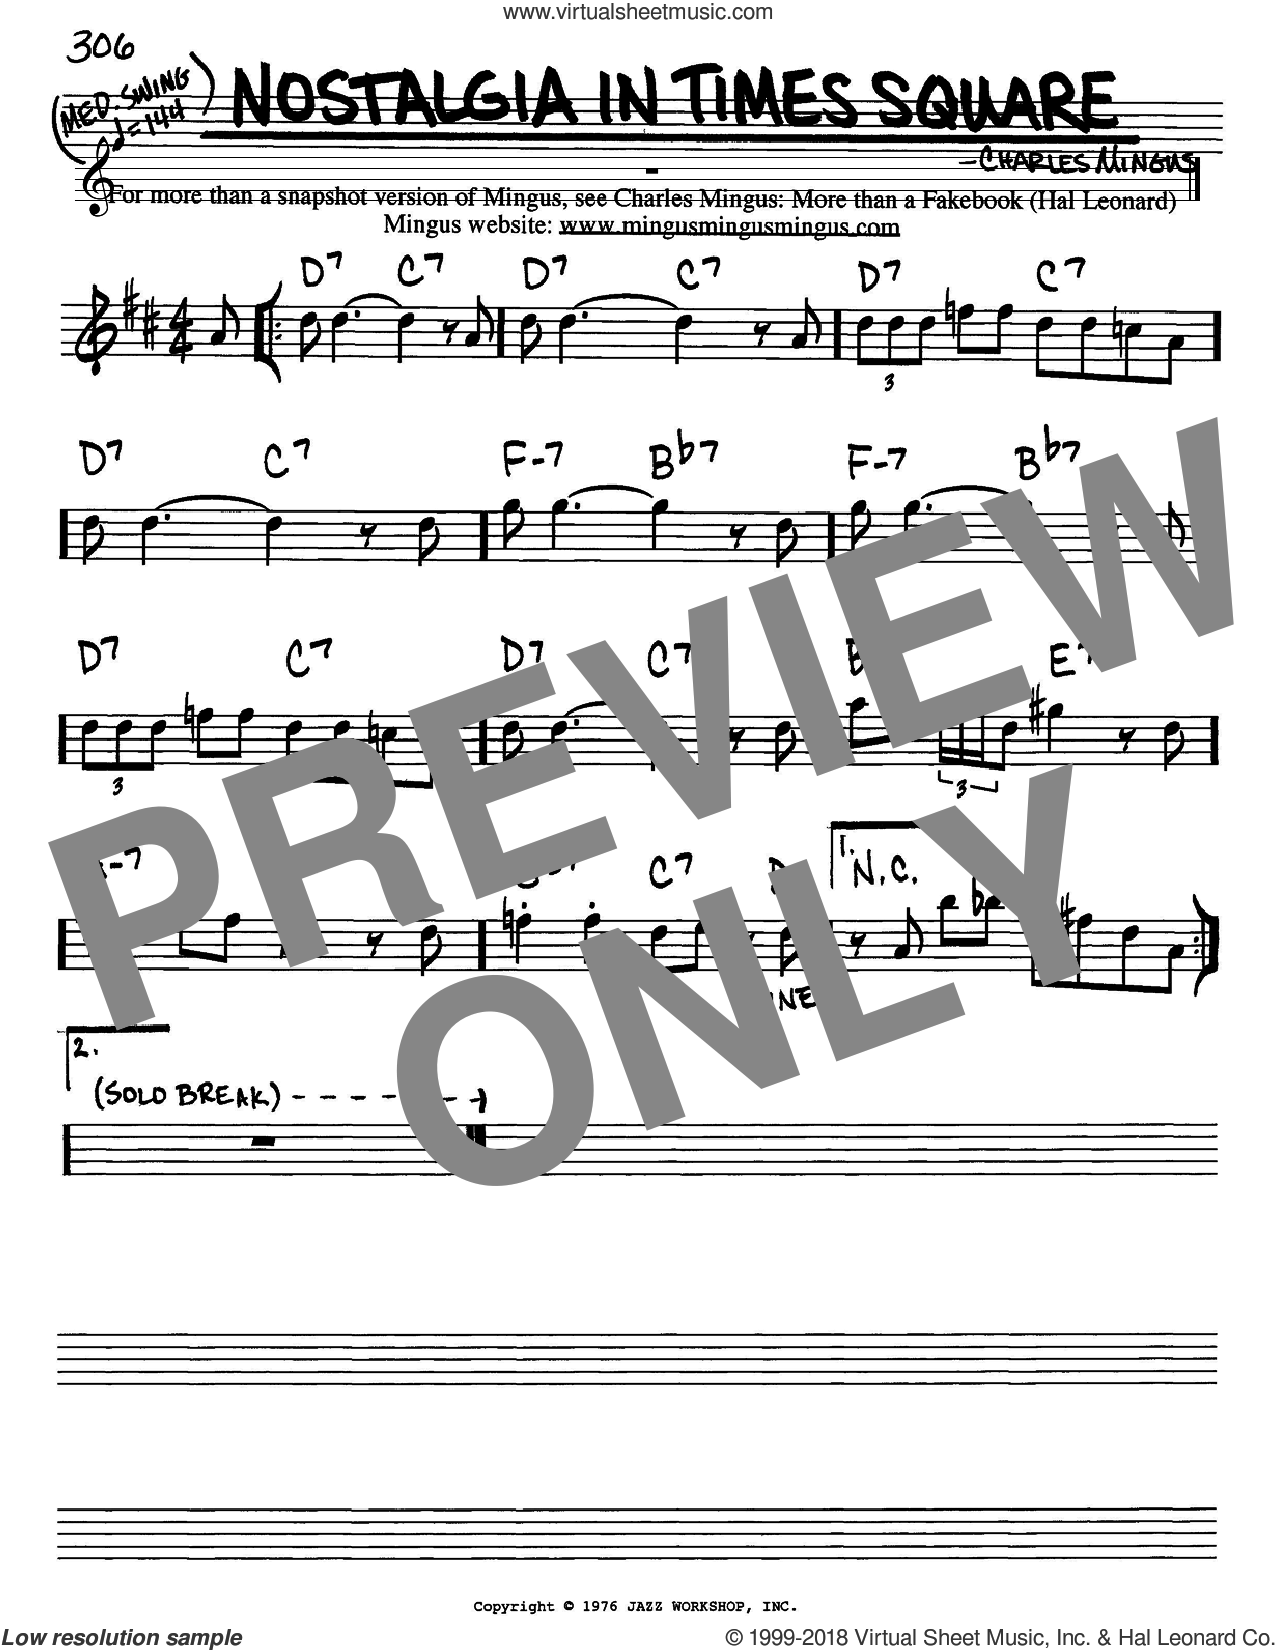 Nostalgia In Times Square sheet music for voice and other instruments (Eb) by Charles Mingus. Score Image Preview.